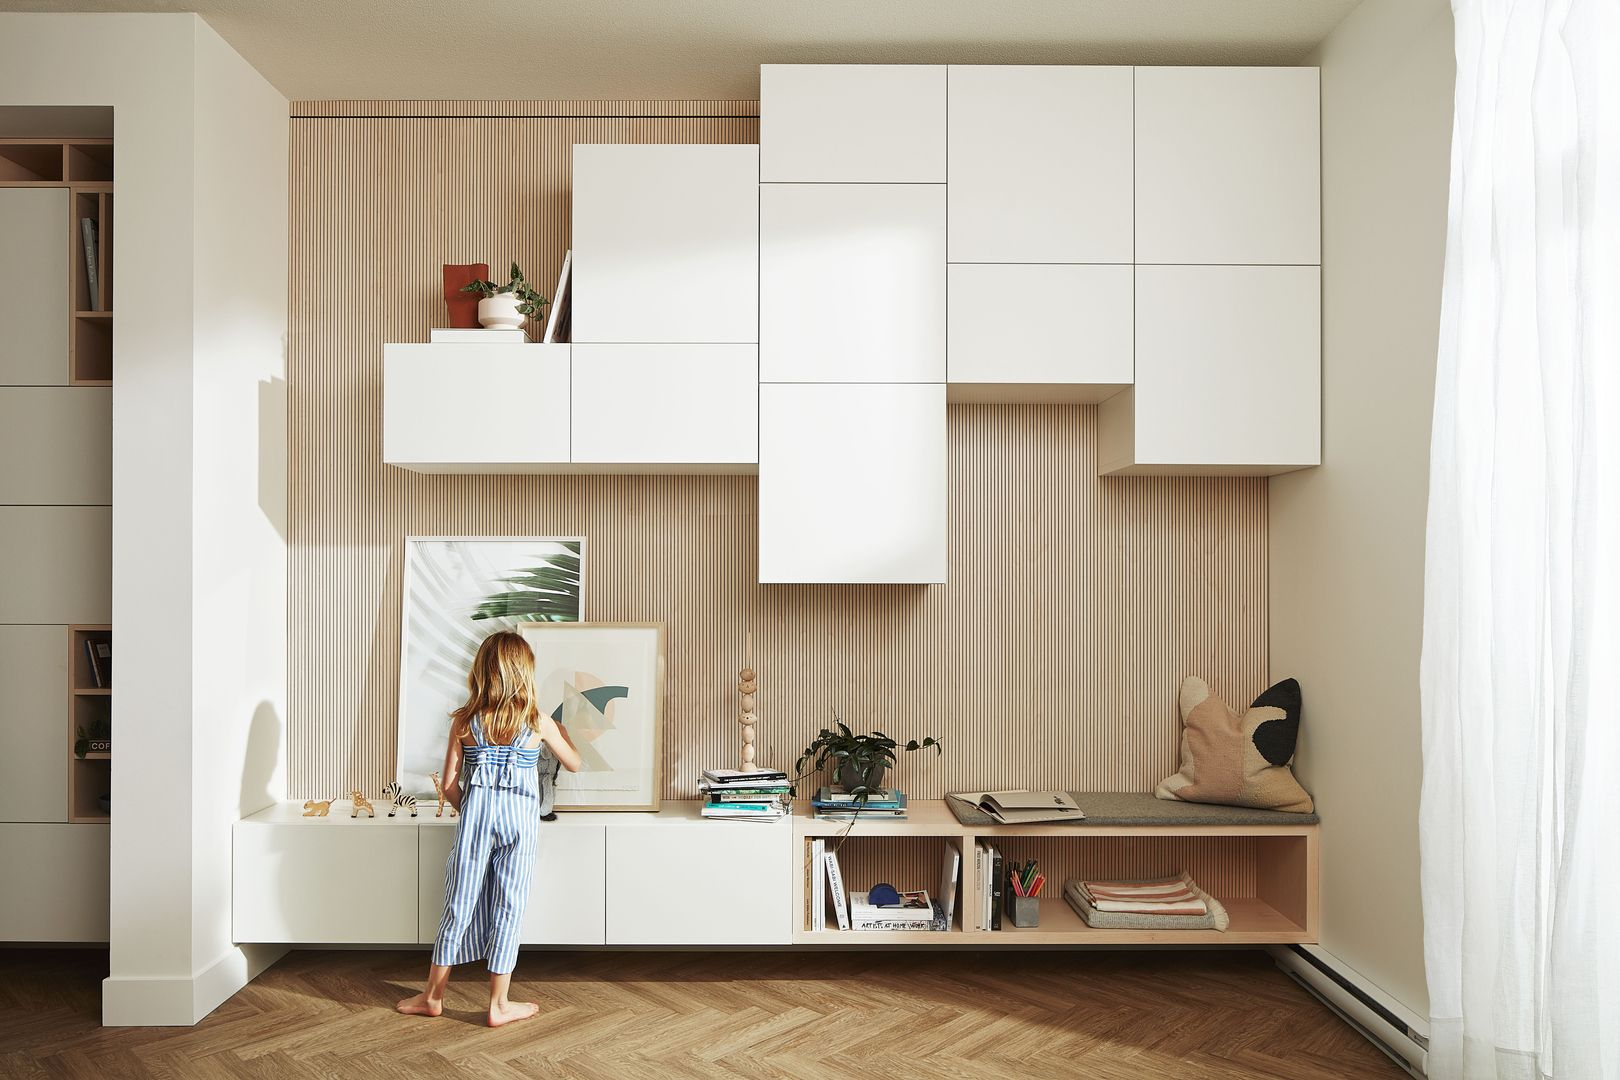 Ikea Hacks To Elevate Your Home Design Interieur Woonkamer Huis Interieur Home Design